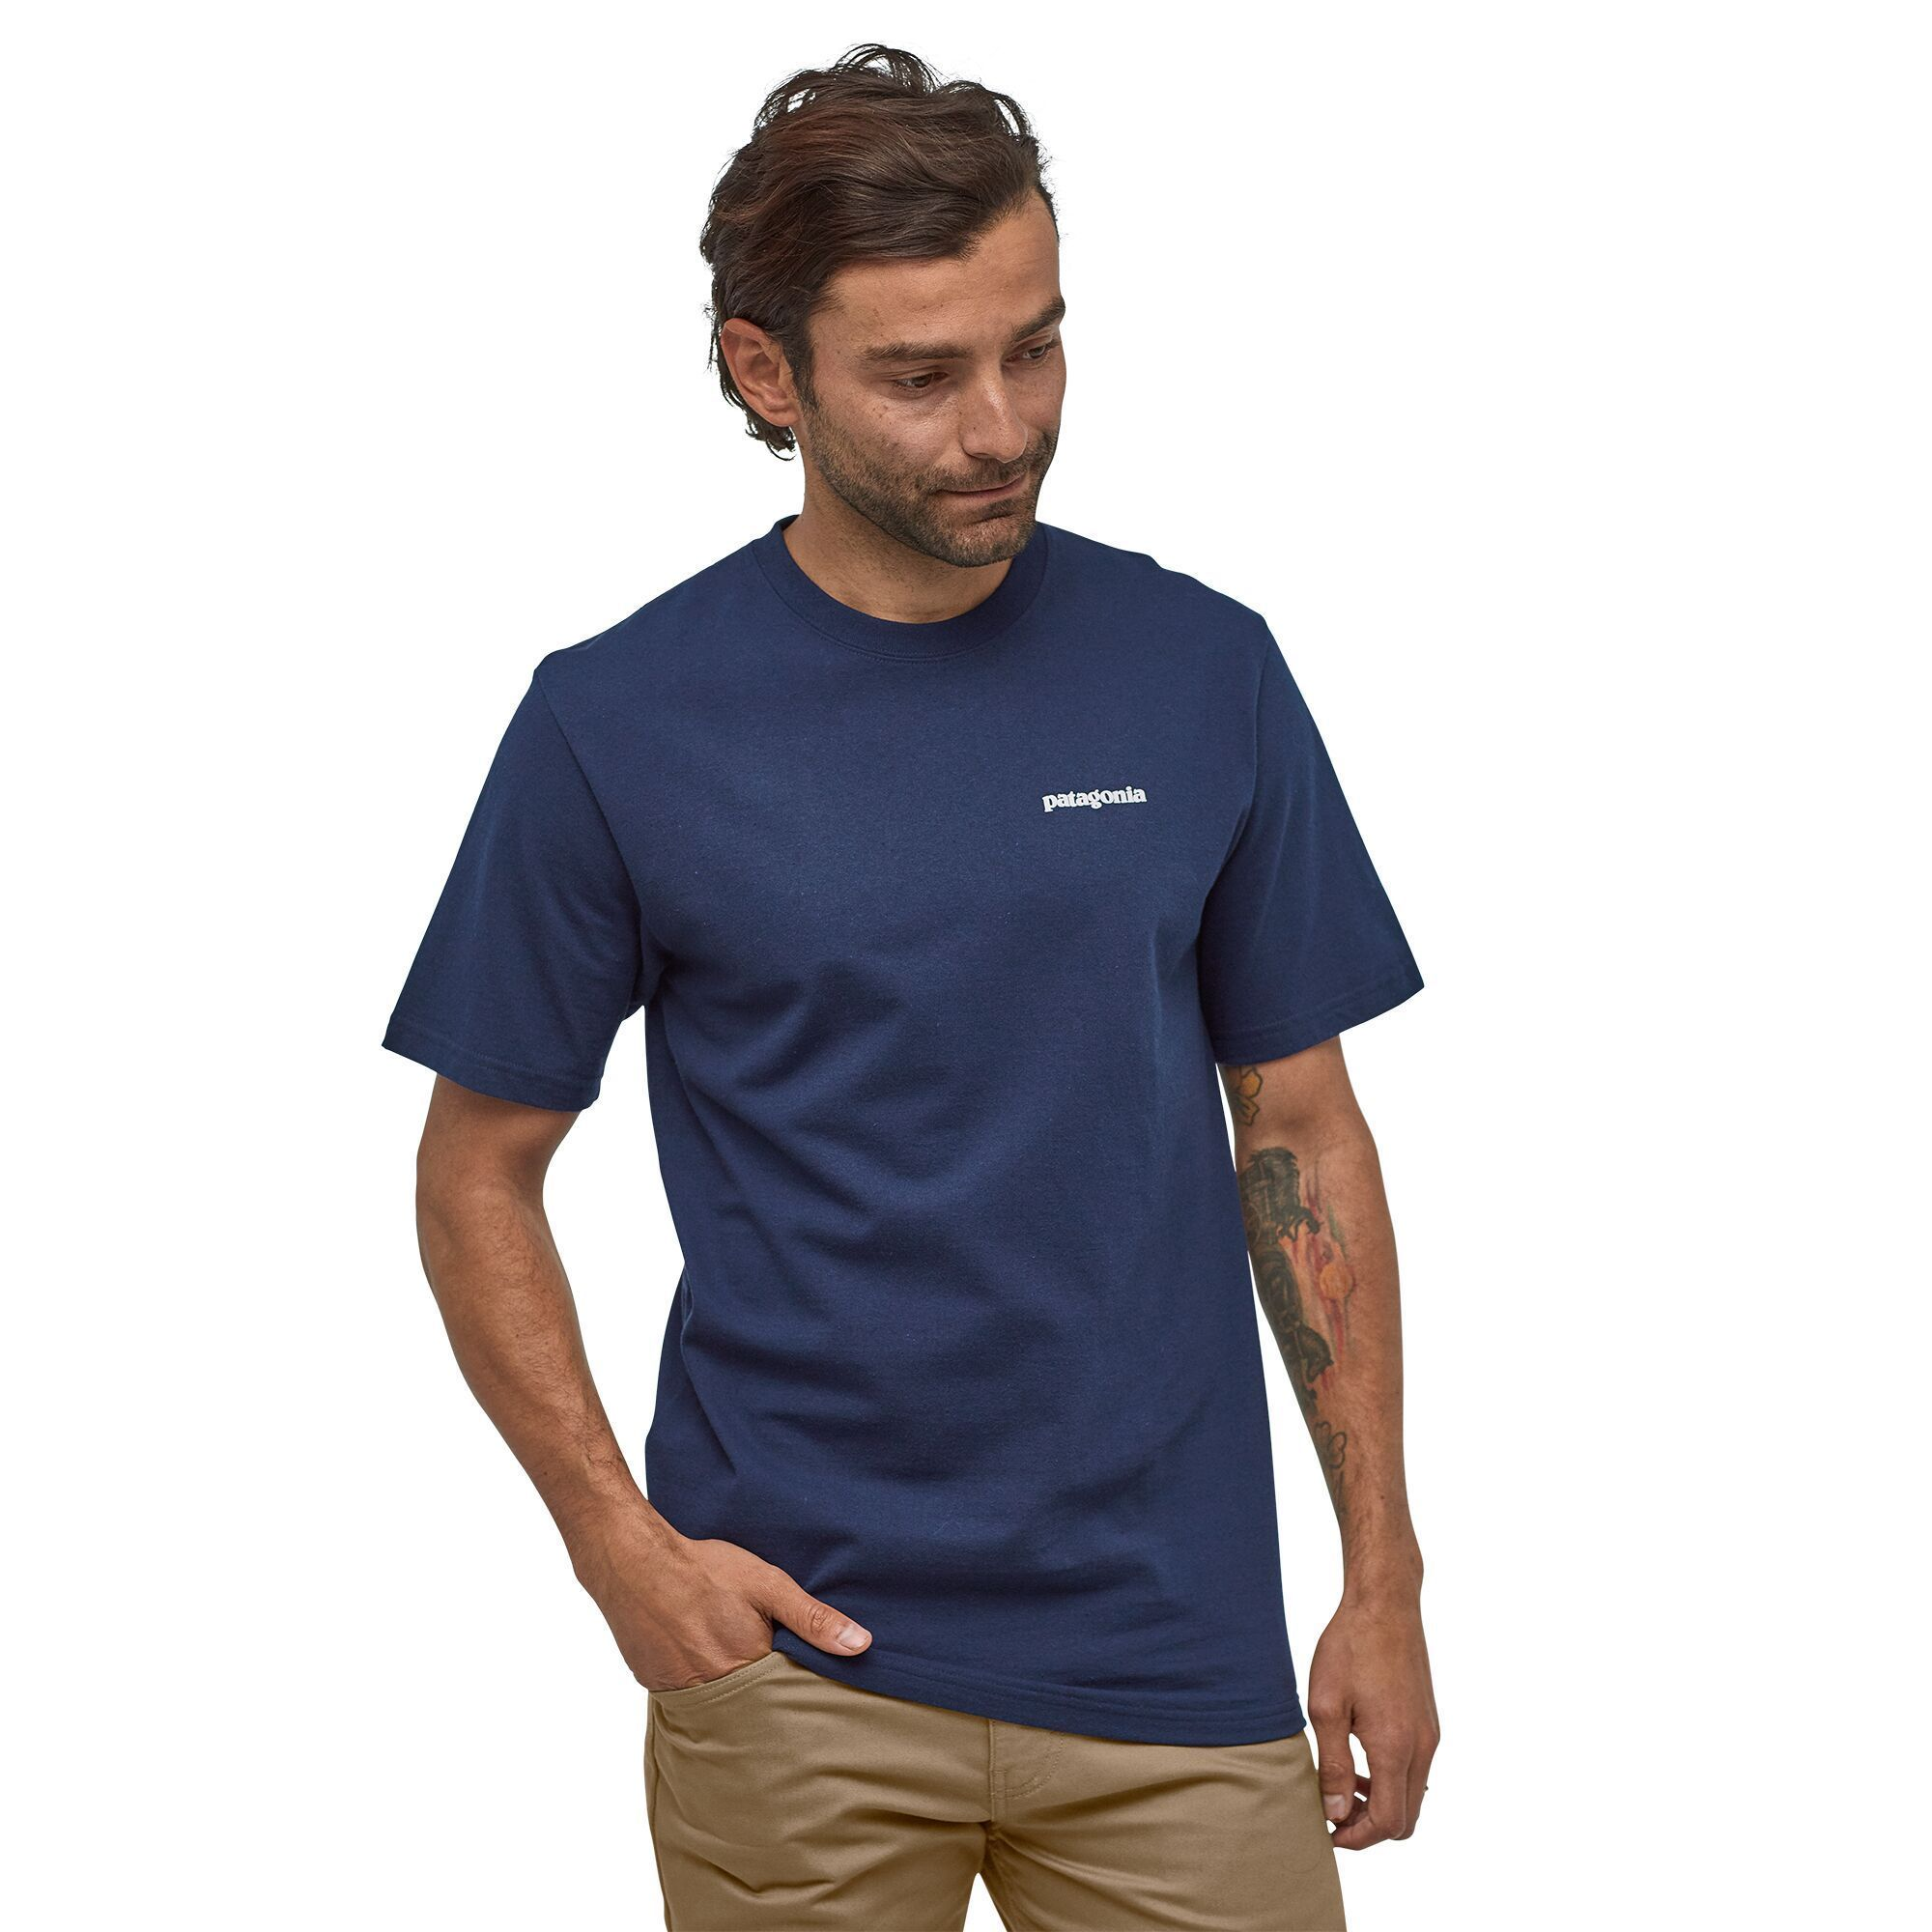 Patagonia - M's P-6 Logo Responsibili-Tee® - Recycled cotton - Weekendbee - sustainable sportswear